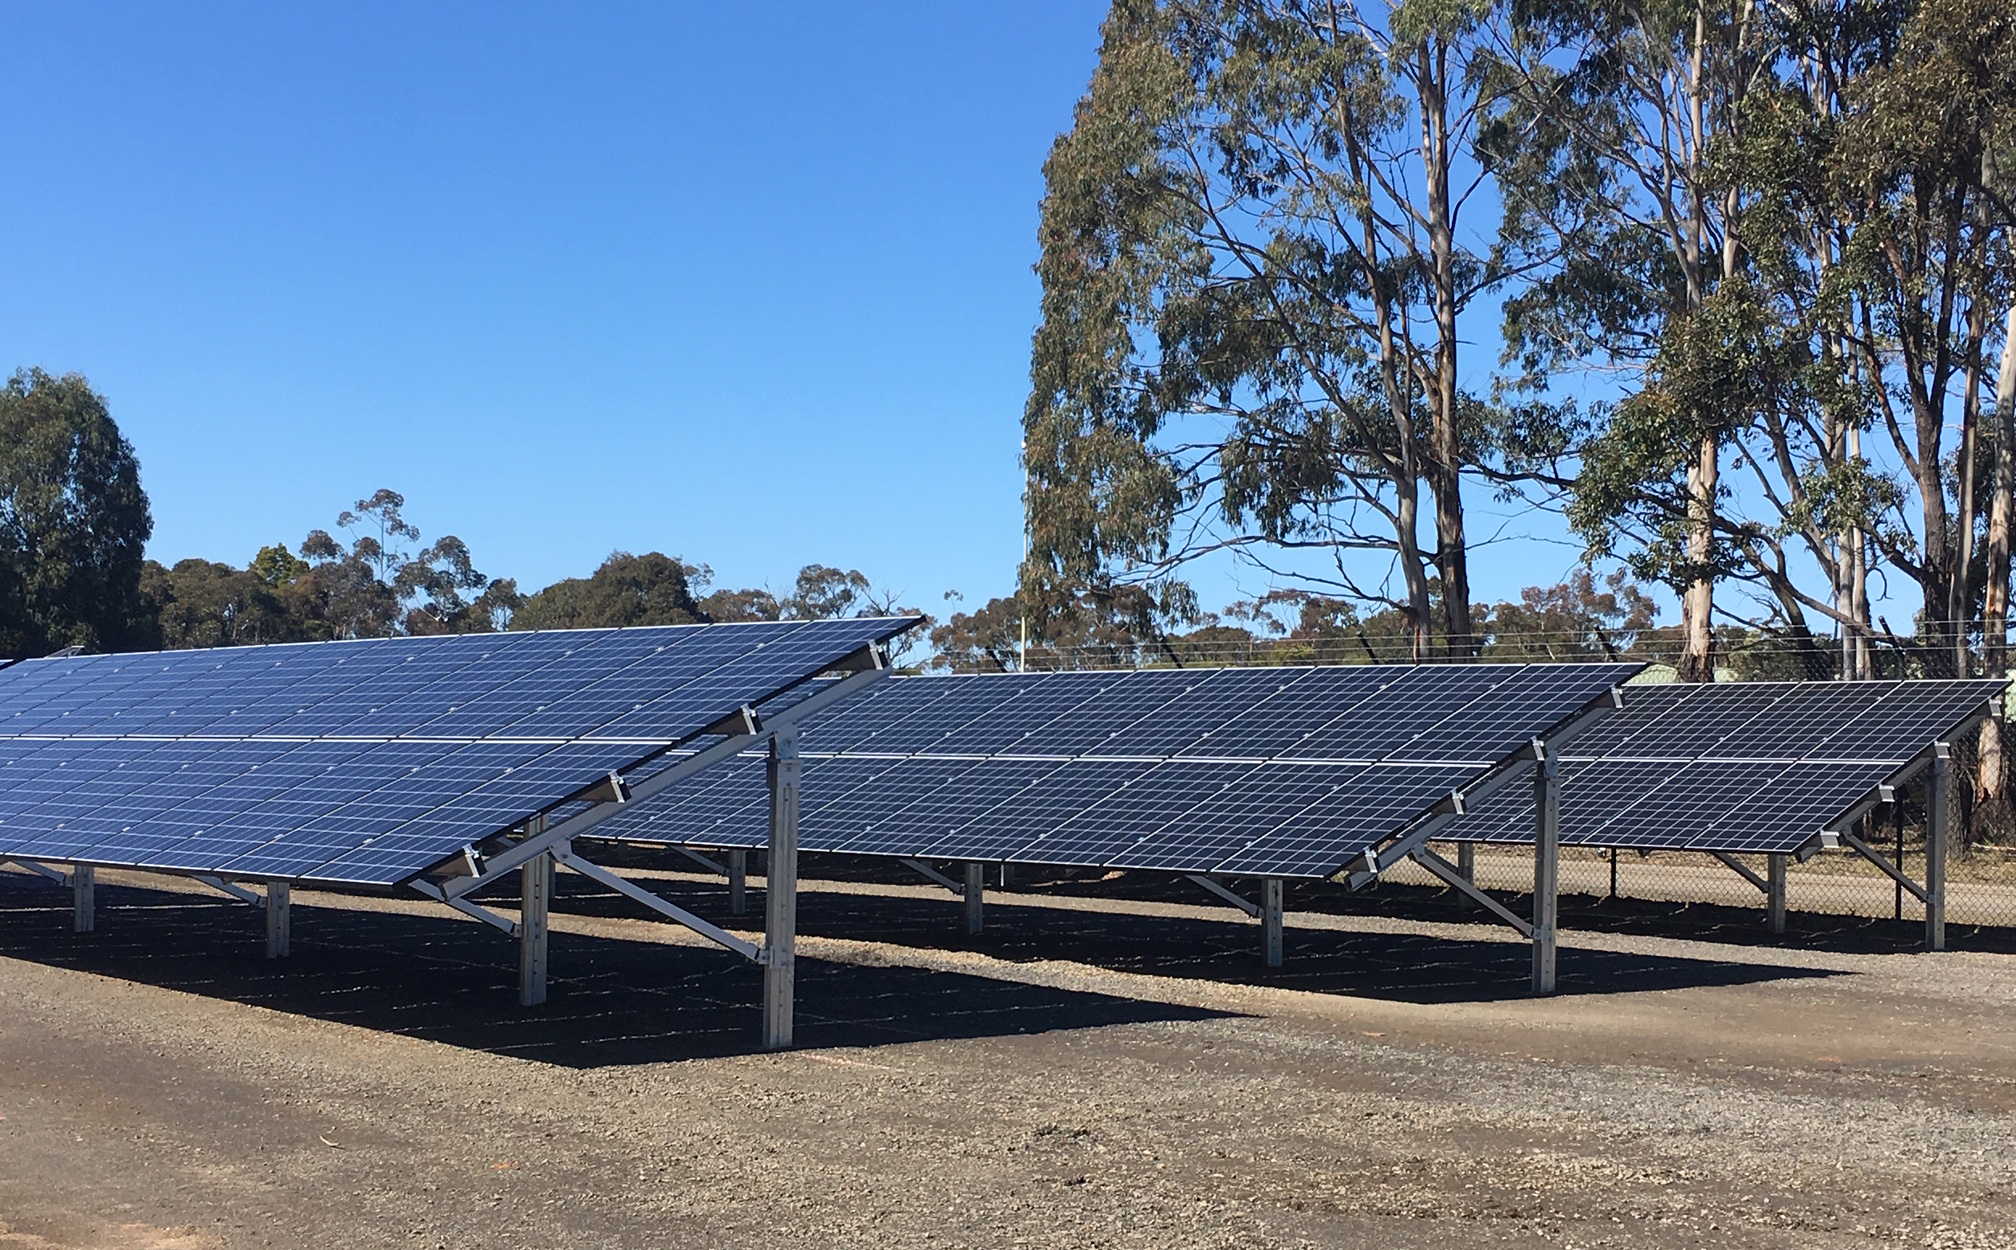 A new solar system at AARC enables 24/7 power on-site